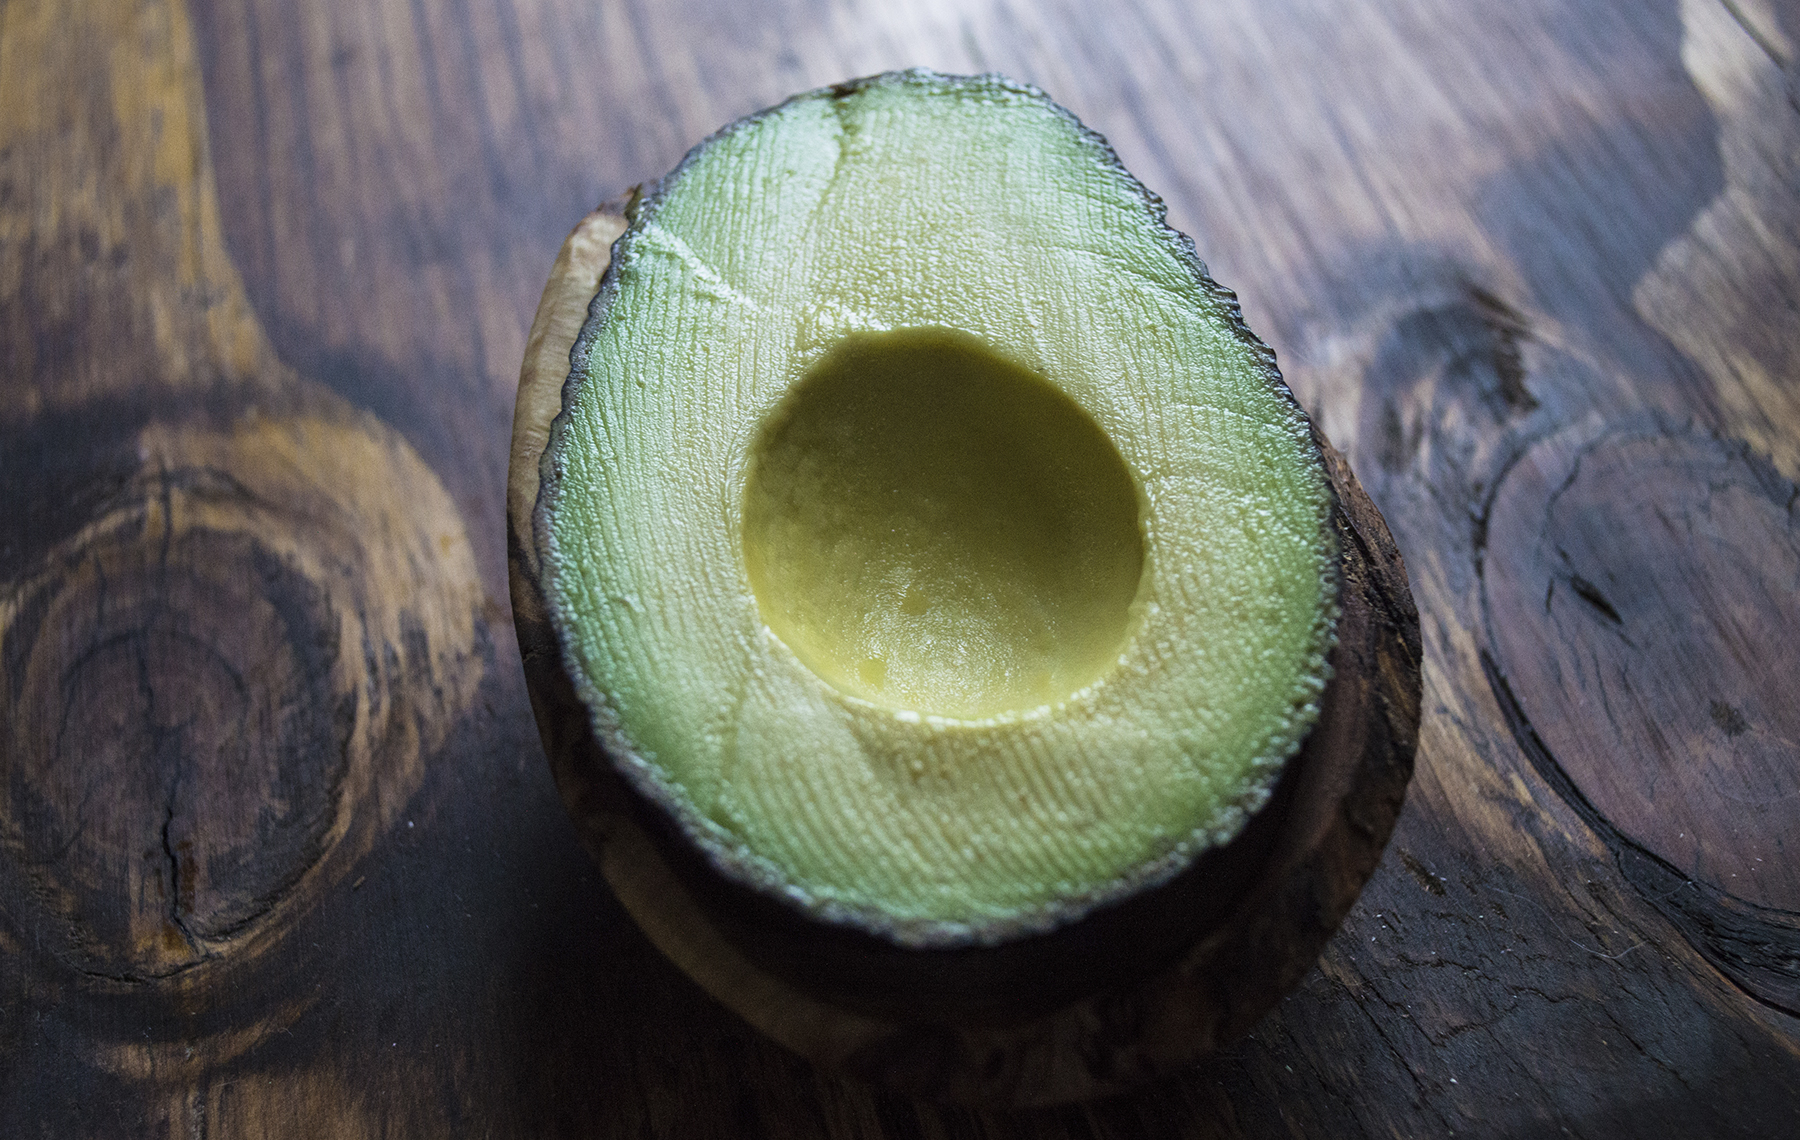 AltaMed half avocado on wooden table